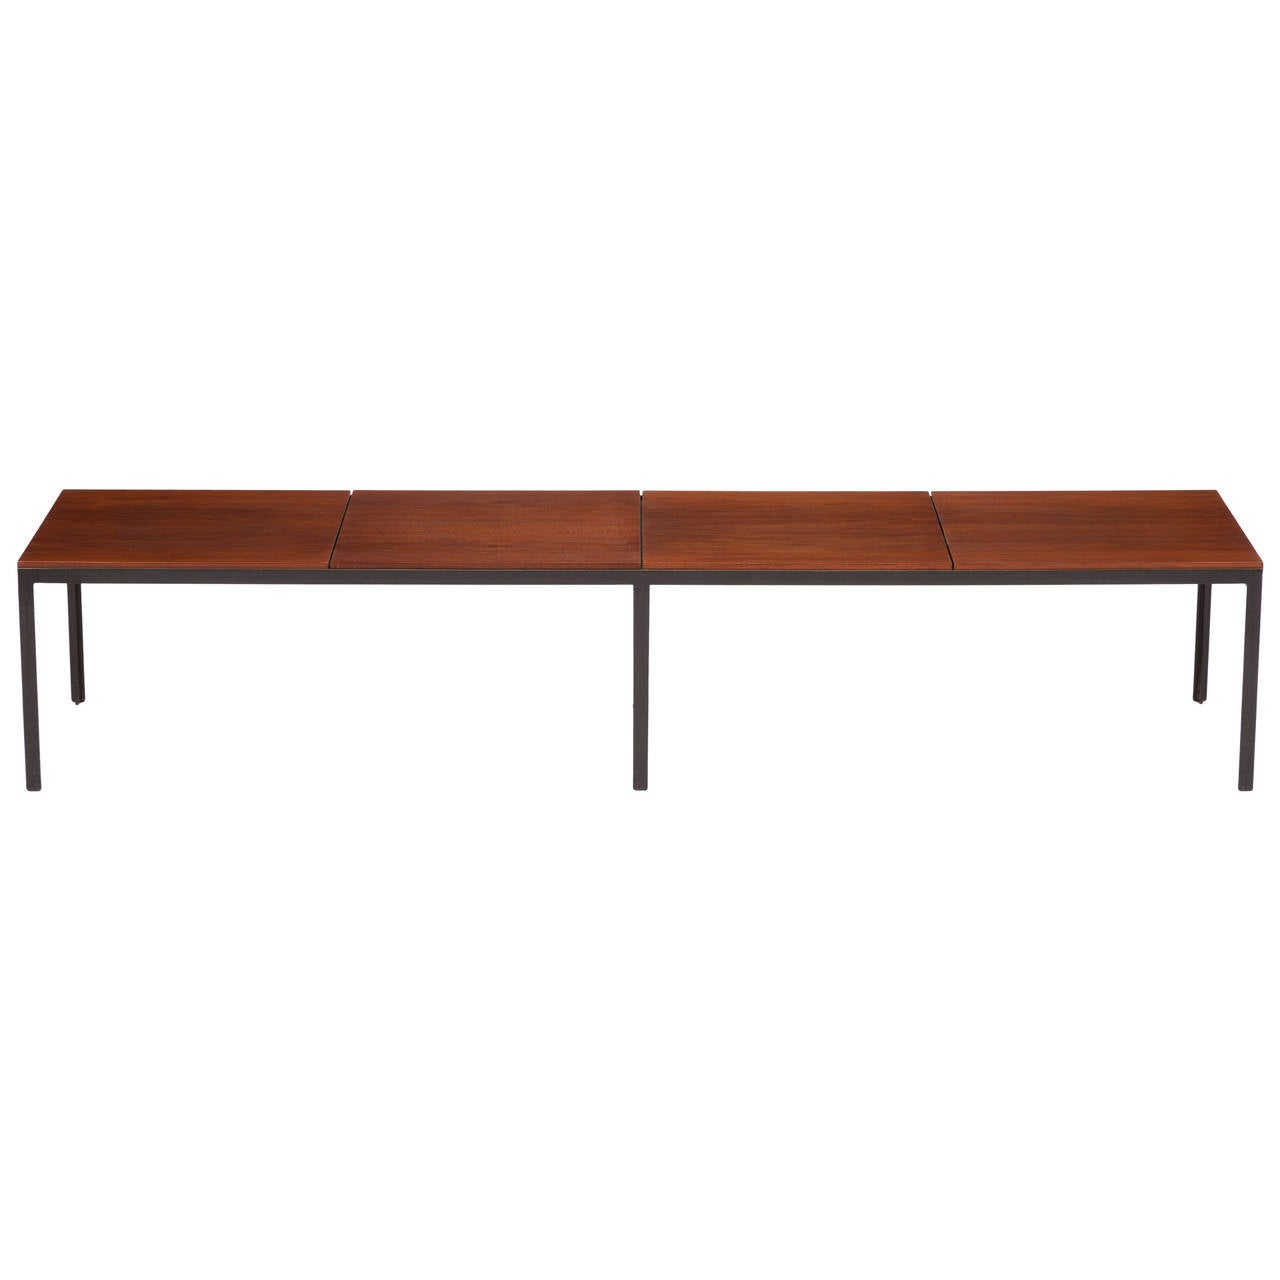 Iron Coffee Tables Knoll Angle Iron Coffee Table For Sale At 1stdibs